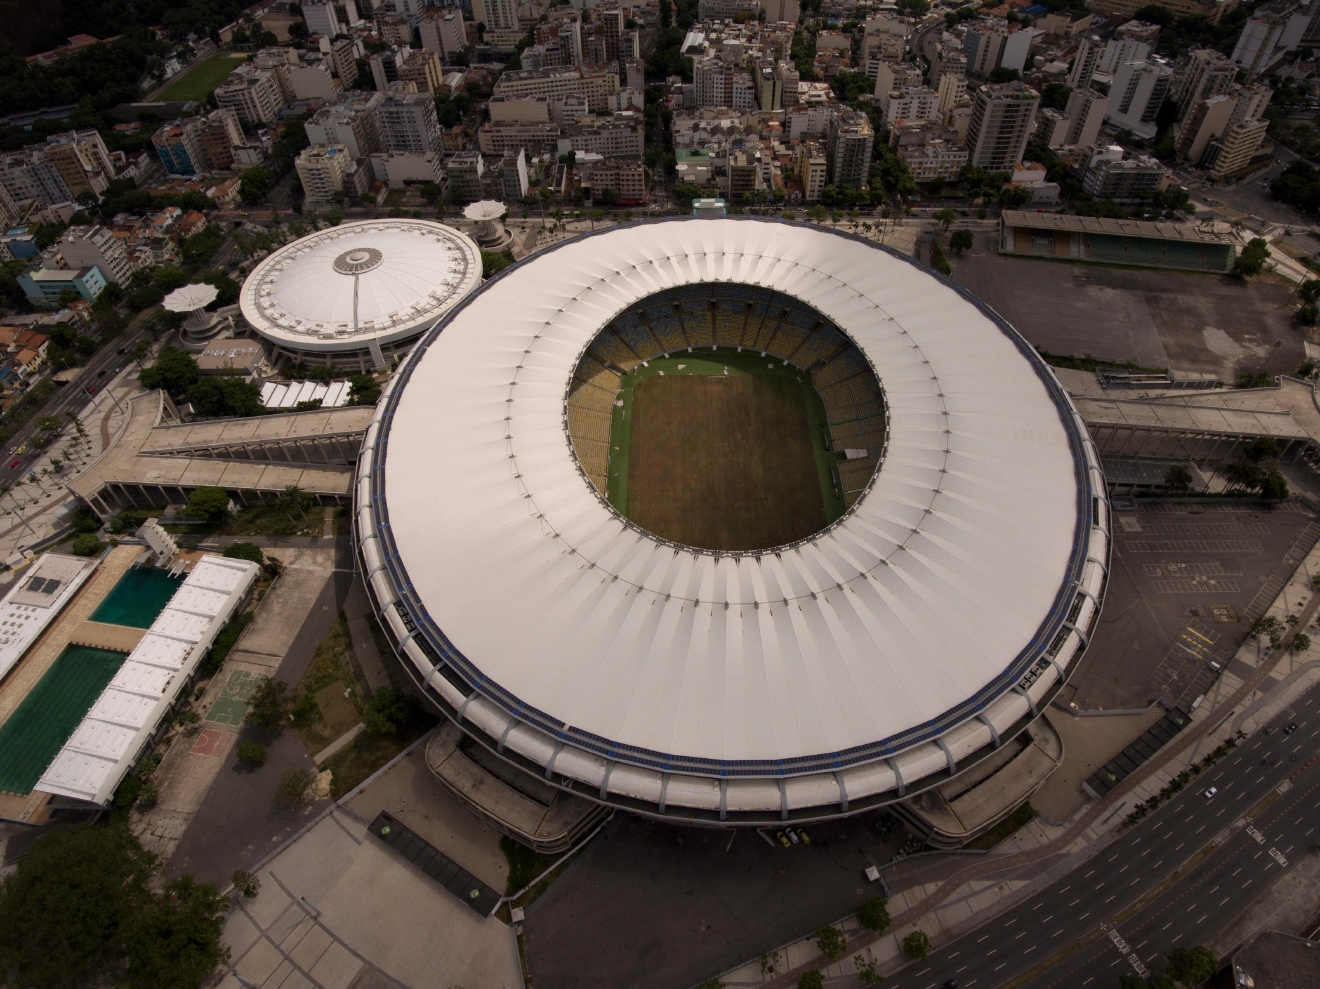 This Feb. 2, 2017 shows Maracana stadium with a dry field in Rio de Janeiro, Brazil. Stadium operators, the Rio state government, and Olympic organizers have fought over $1 million in unpaid electricity bills and management of the venue. (AP Photo/Silvia Izquierdo)